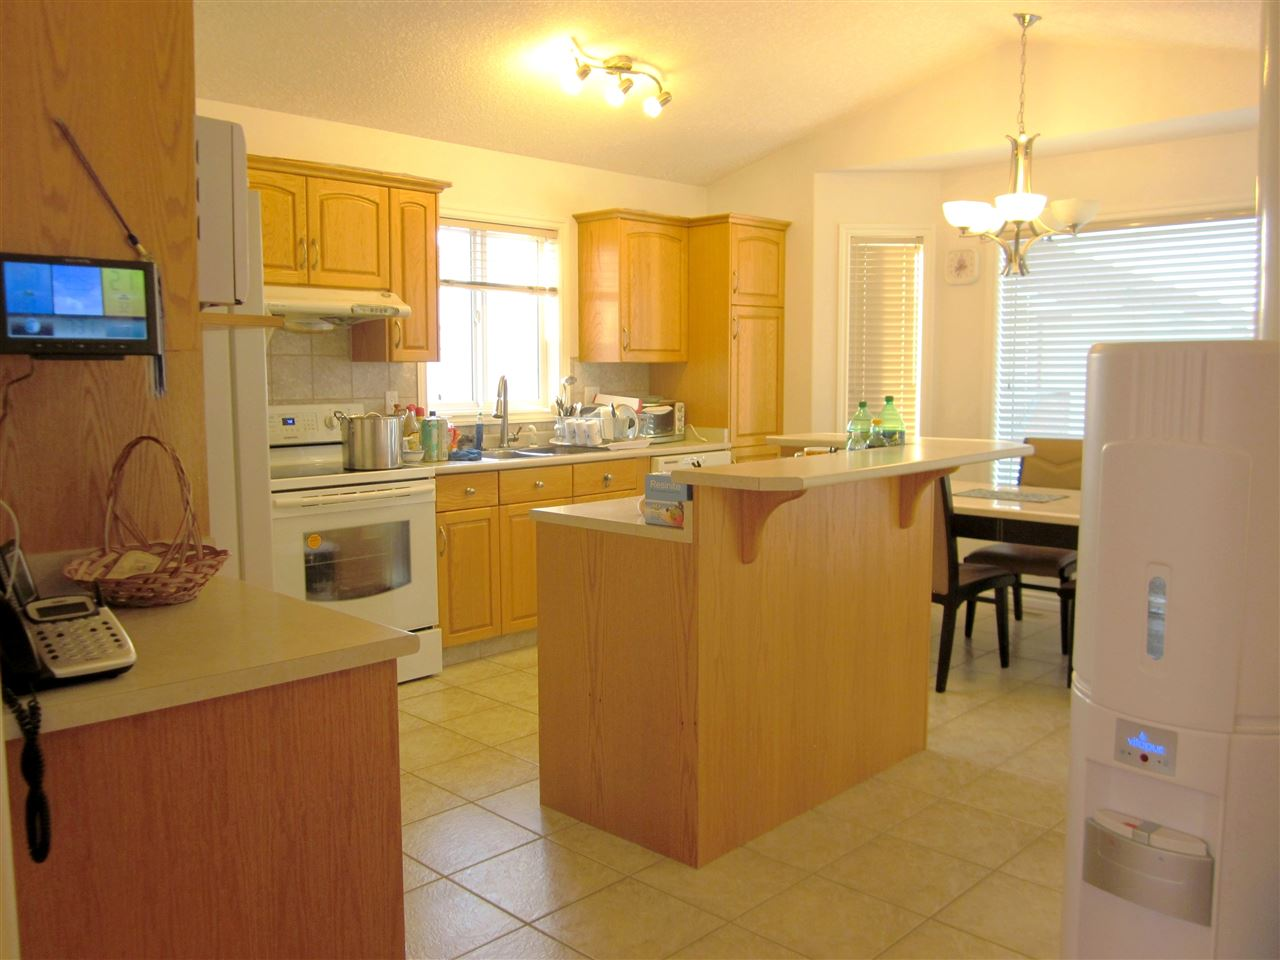 Beautiful kitchen has island with raised eating bar, corner pantry, tiled backsplash, and breakfast nook with bay window.